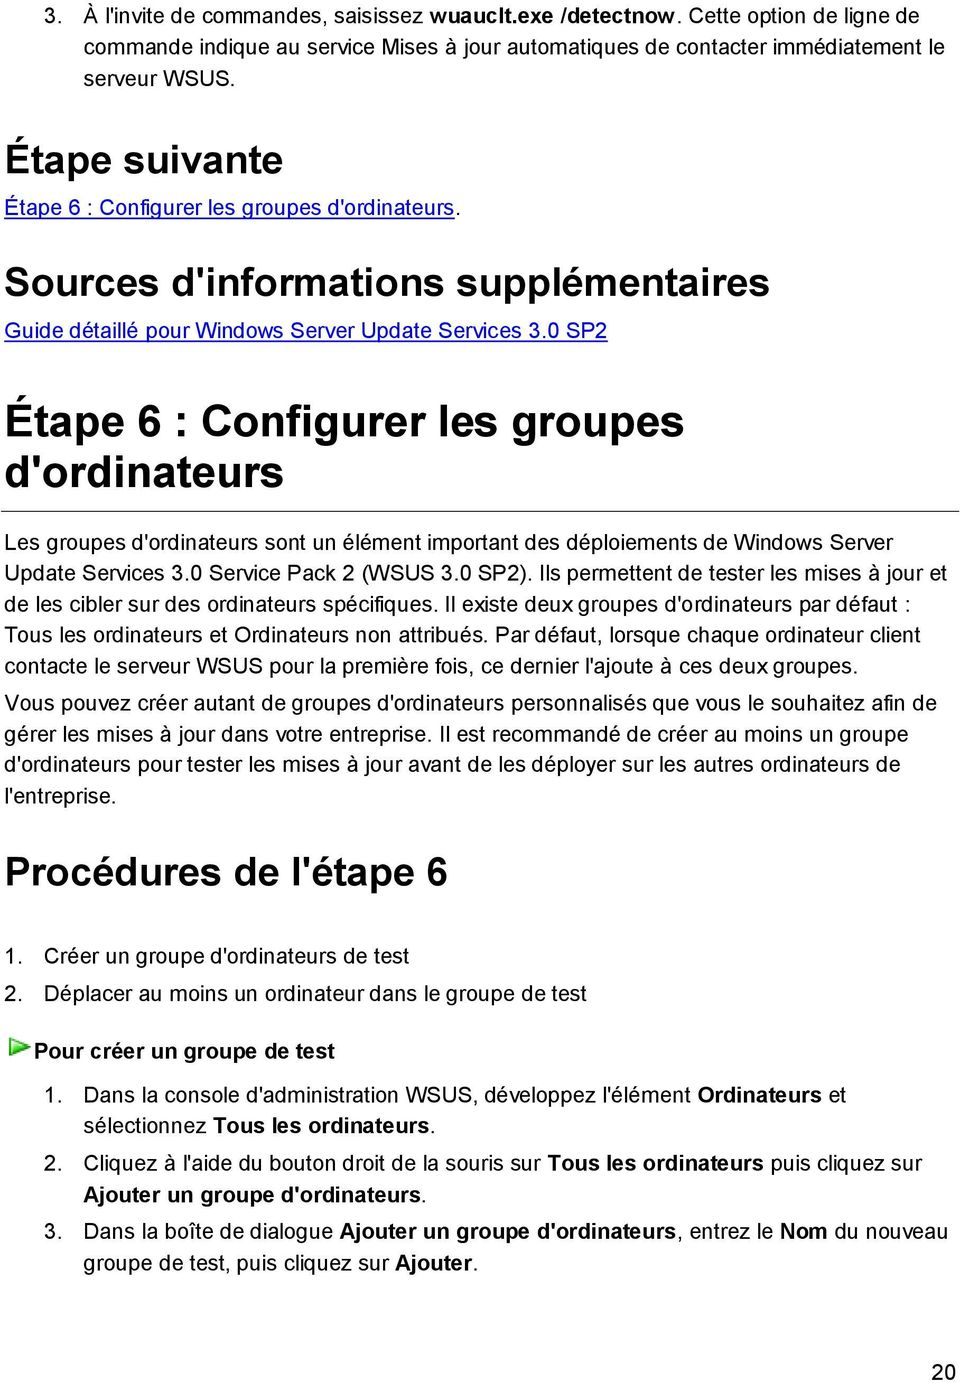 0 SP2 Étape 6 : Configurer les groupes d'ordinateurs Les groupes d'ordinateurs sont un élément important des déploiements de Windows Server Update Services 3.0 Service Pack 2 (WSUS 3.0 SP2).